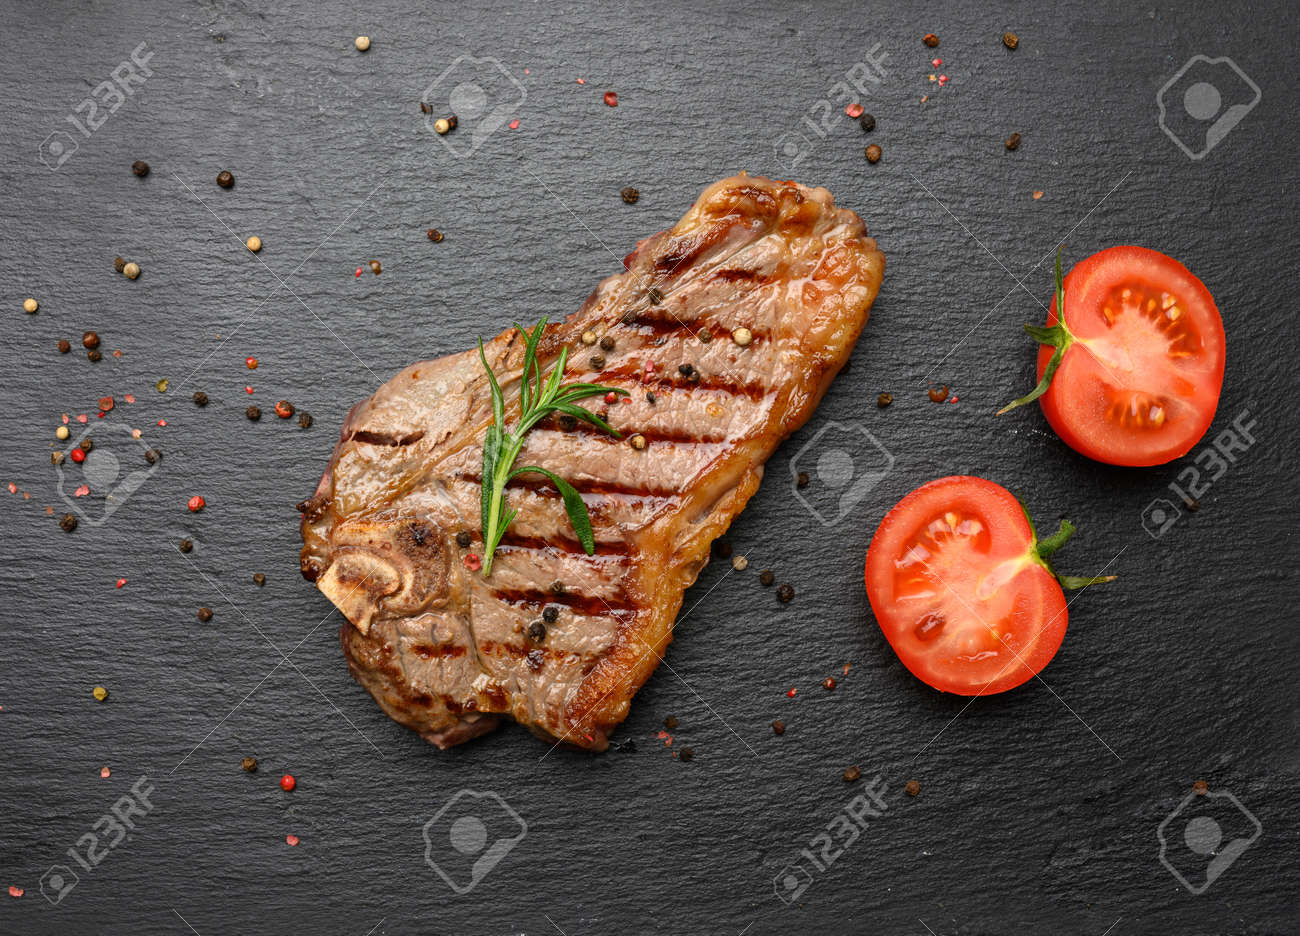 whole fried New York beef steak on a black board, striploin doneness rare, top view - 169040130